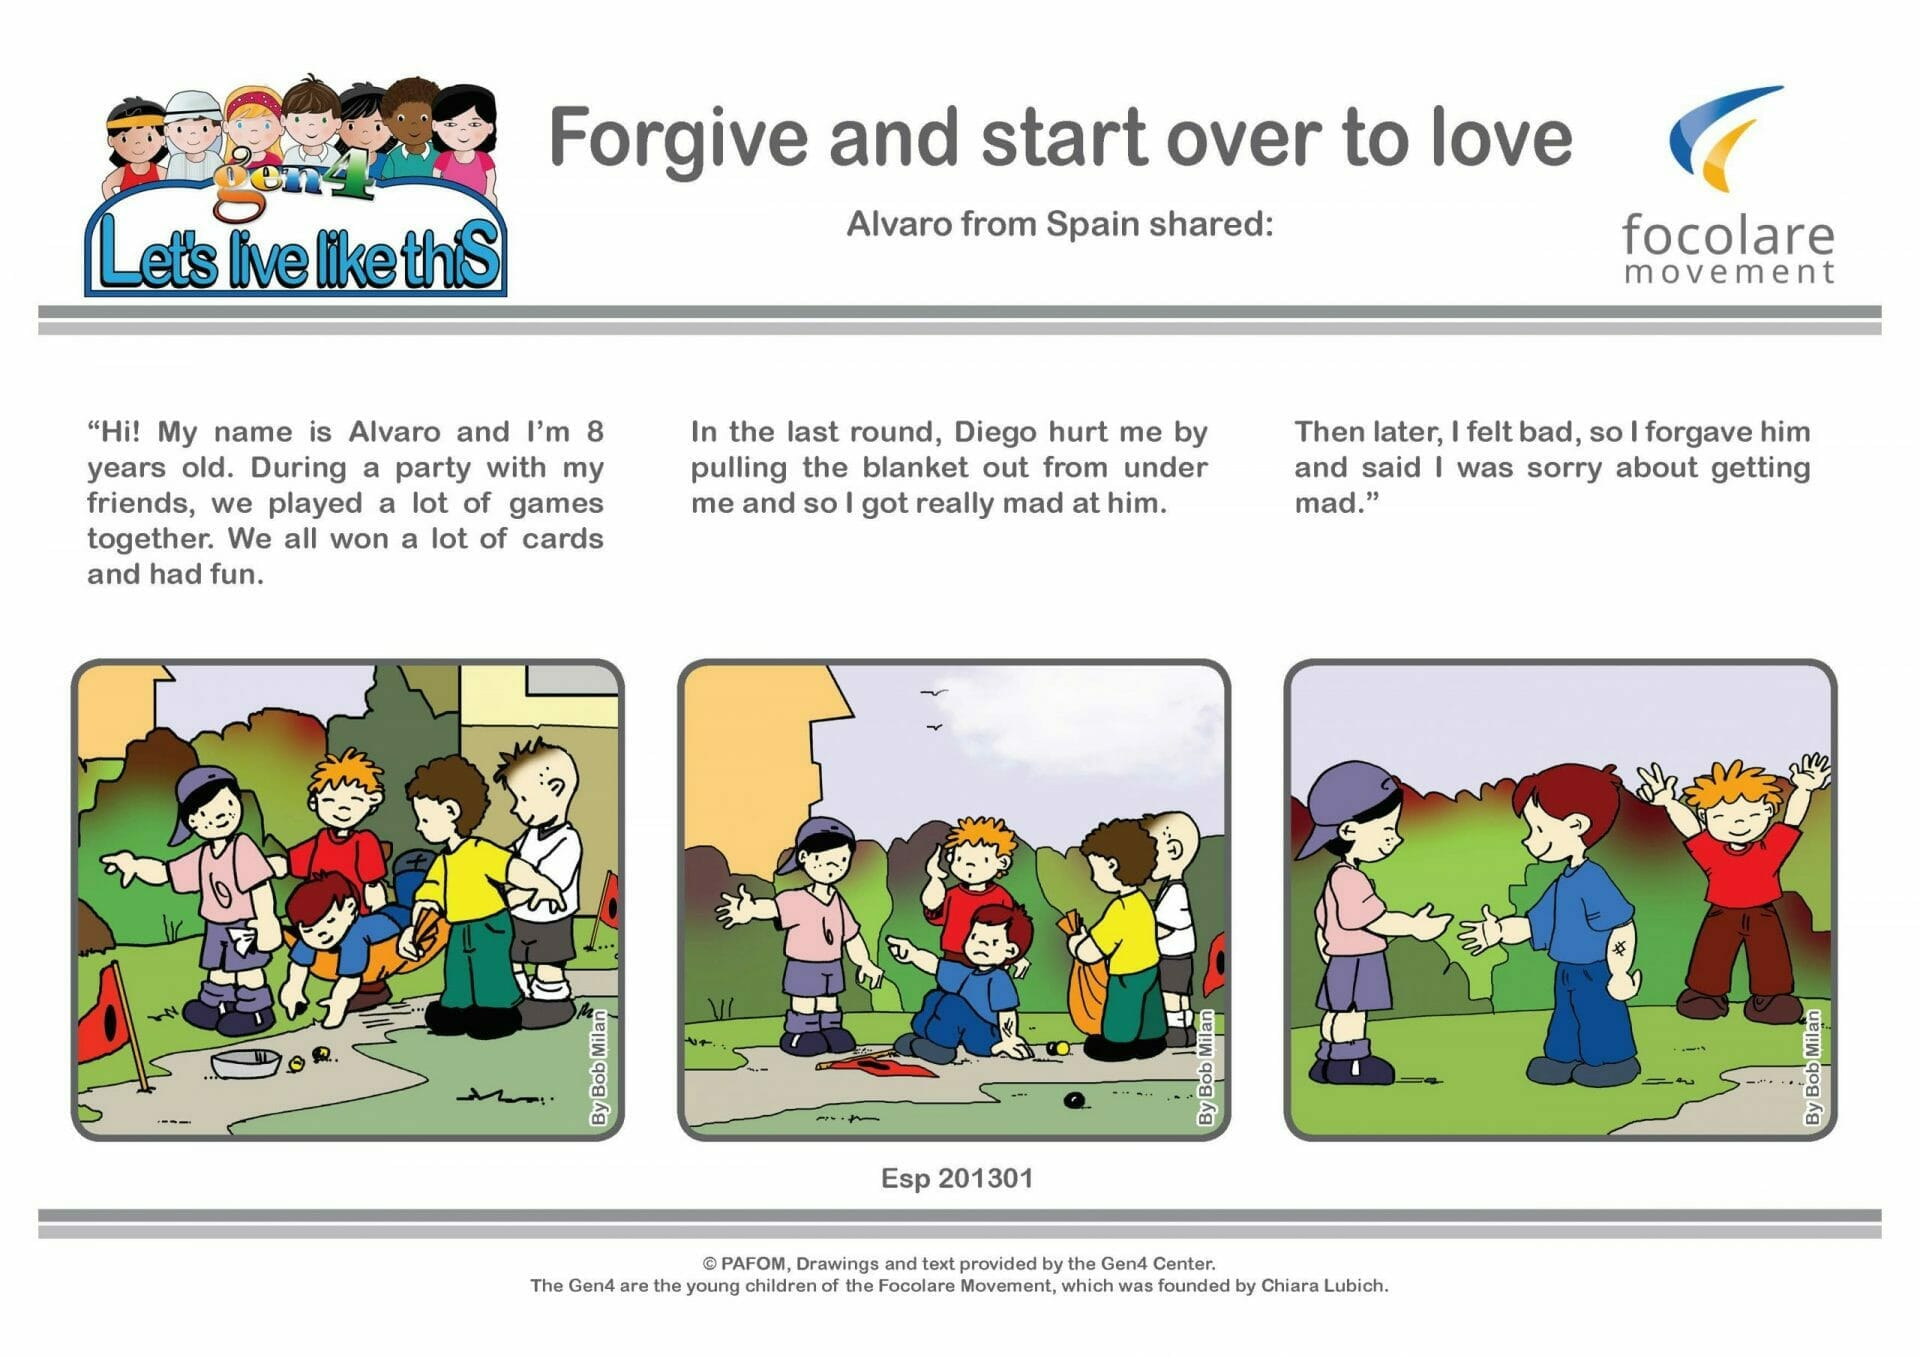 Forgive and start over to love